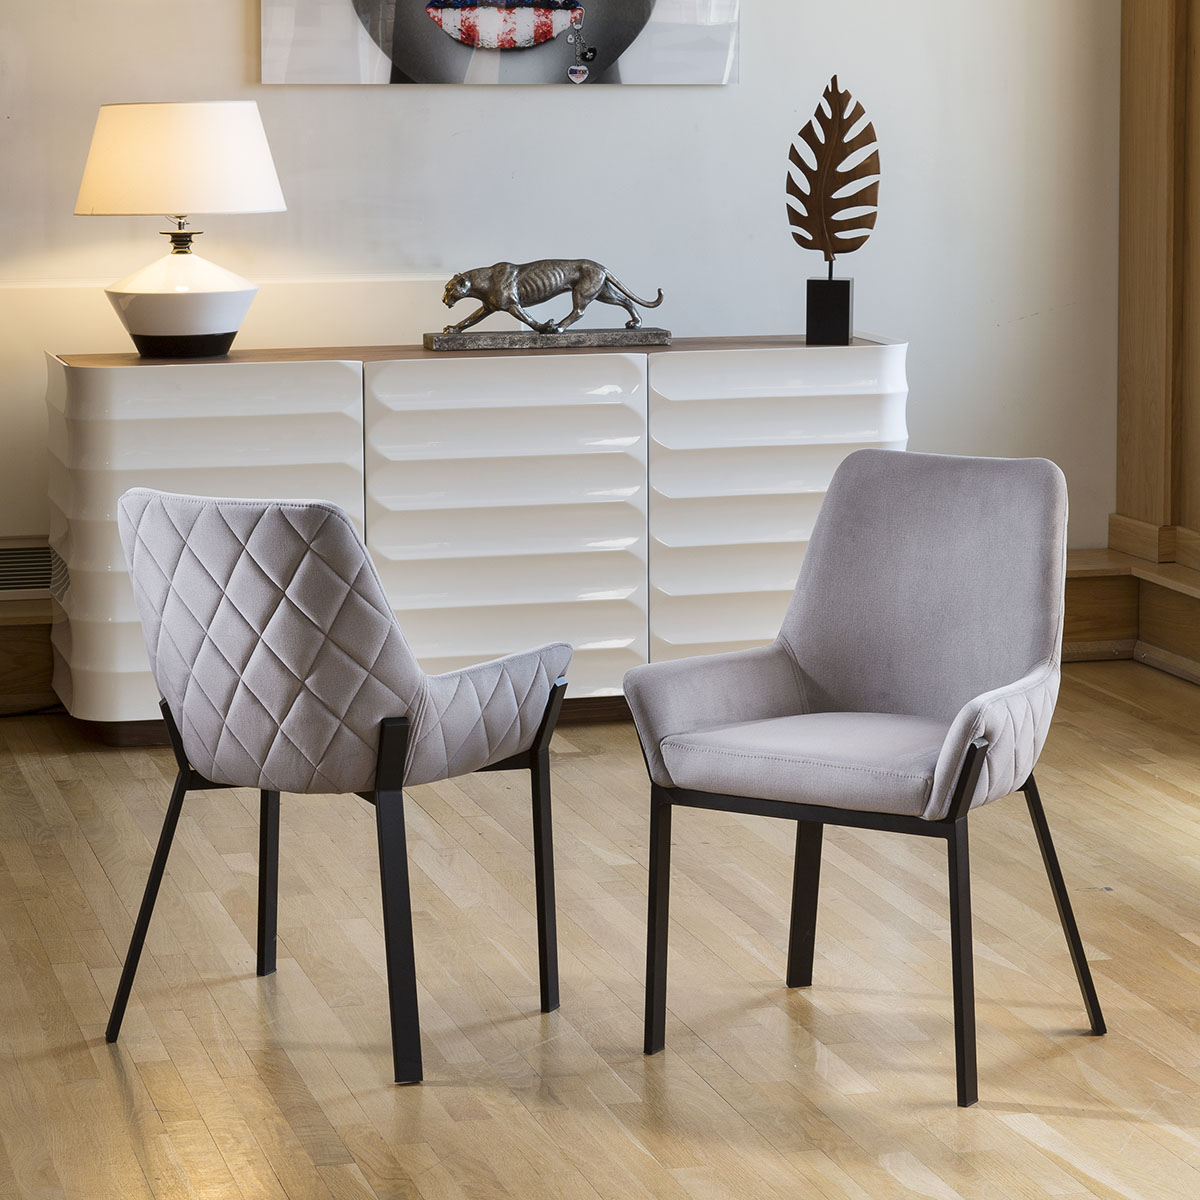 Cool Details About Set Of 2 Modern Luxury Carver Chairs Light Grey Matt Black Steel Legs Forskolin Free Trial Chair Design Images Forskolin Free Trialorg